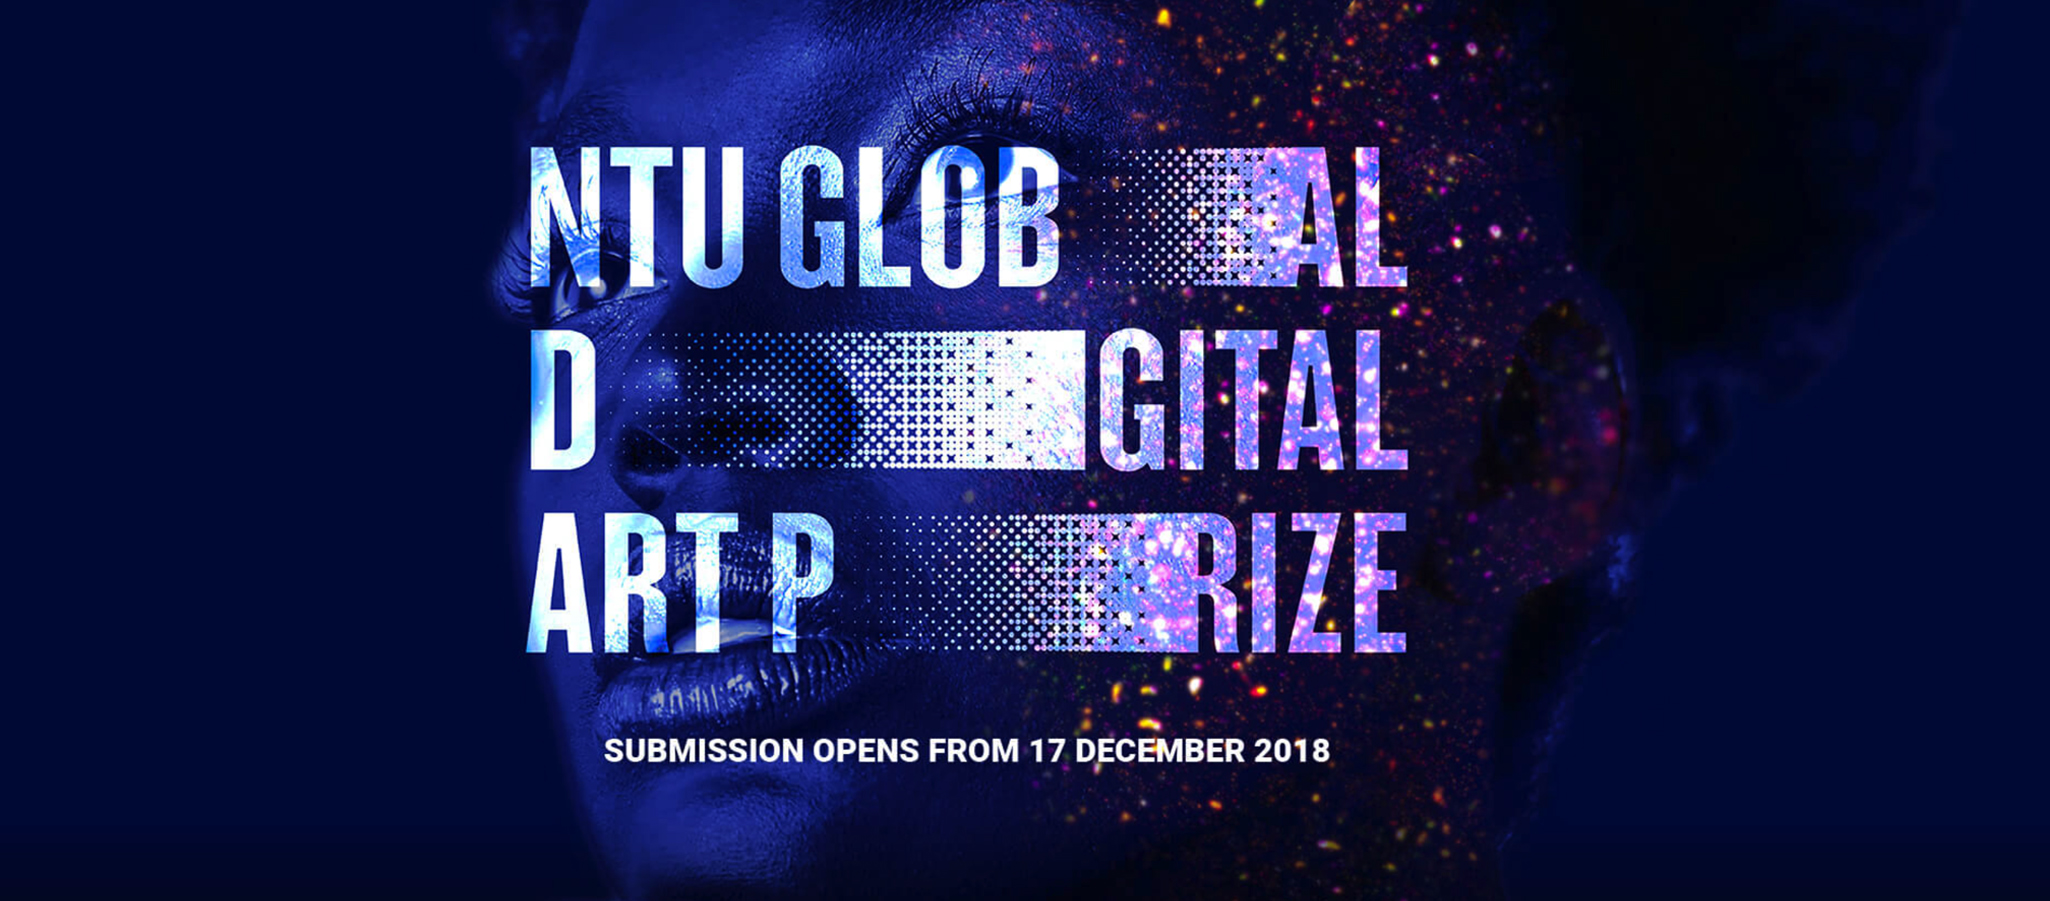 The theme for the first edition of the NTU Singapore Global Digital Art Prize is 'The Fourth Industrial Revolution'. Photo courtesy: NTU